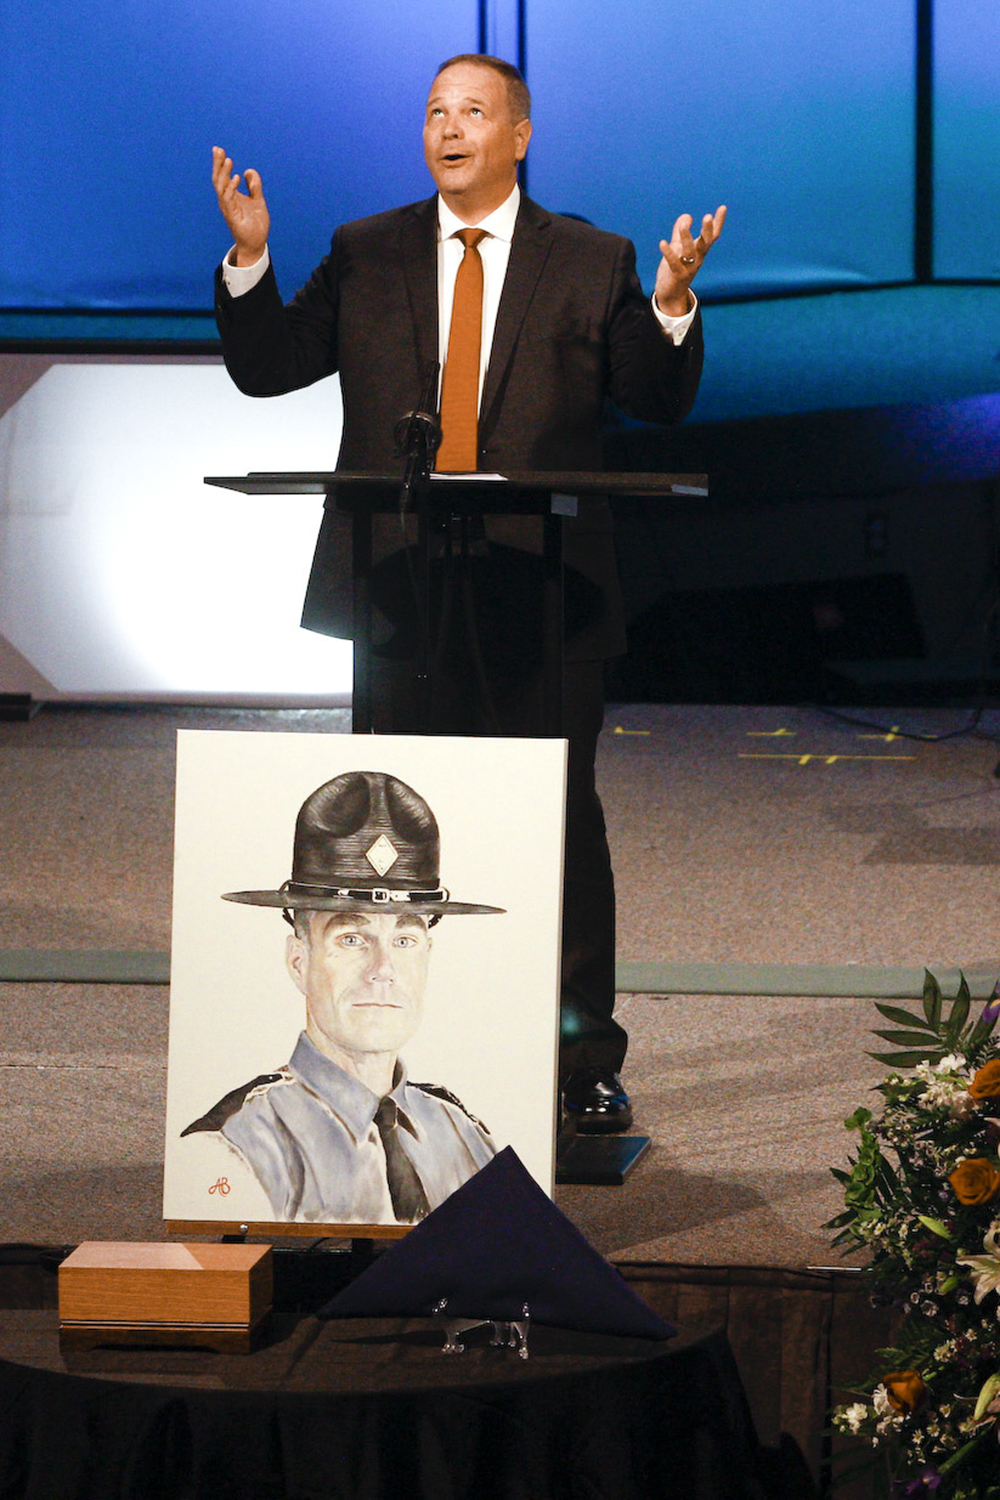 Will Payne, a long-time friend of fallen Virginia State Police Lt. H. Jay Cullen, gestures upwards as he talks about what he thinks Cullen may have thought about all the attention paid to him, during a memorial service at Southside Church of the Nazarene in Chesterfield on Saturday, August 19, 2017. [Scott P. Yates/progress-index.com]